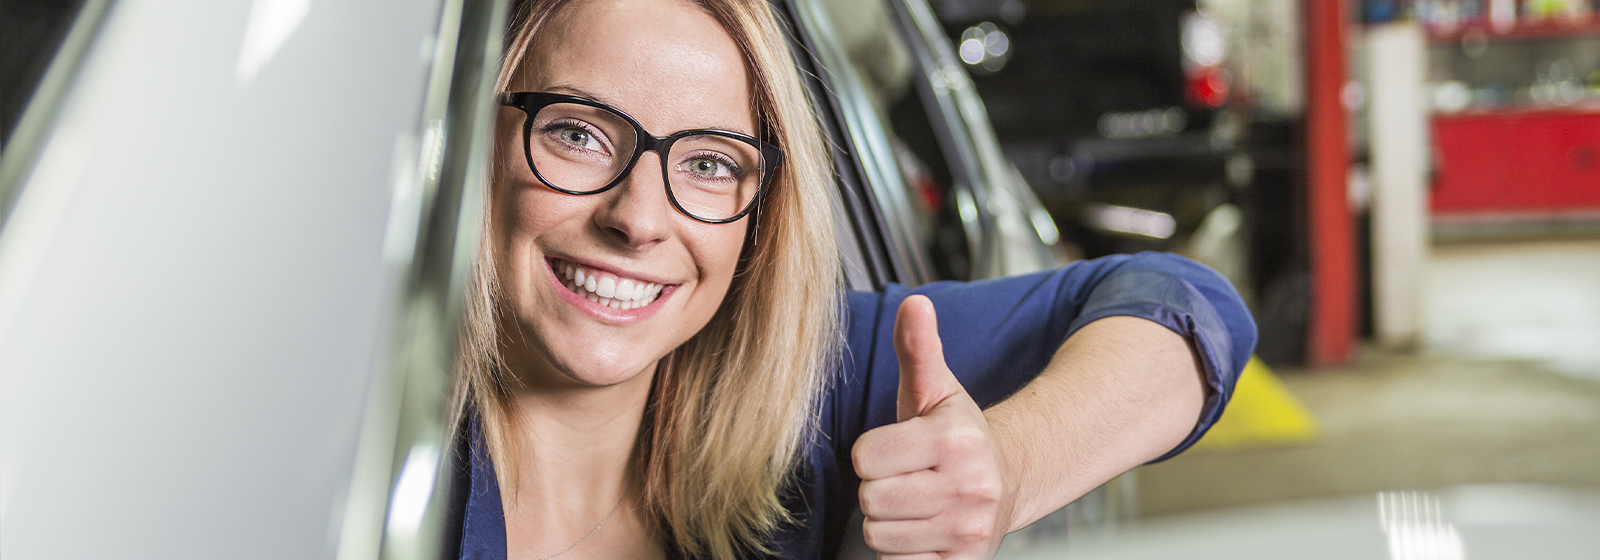 Satisfied customer giving a thumbs up from her vehicle window